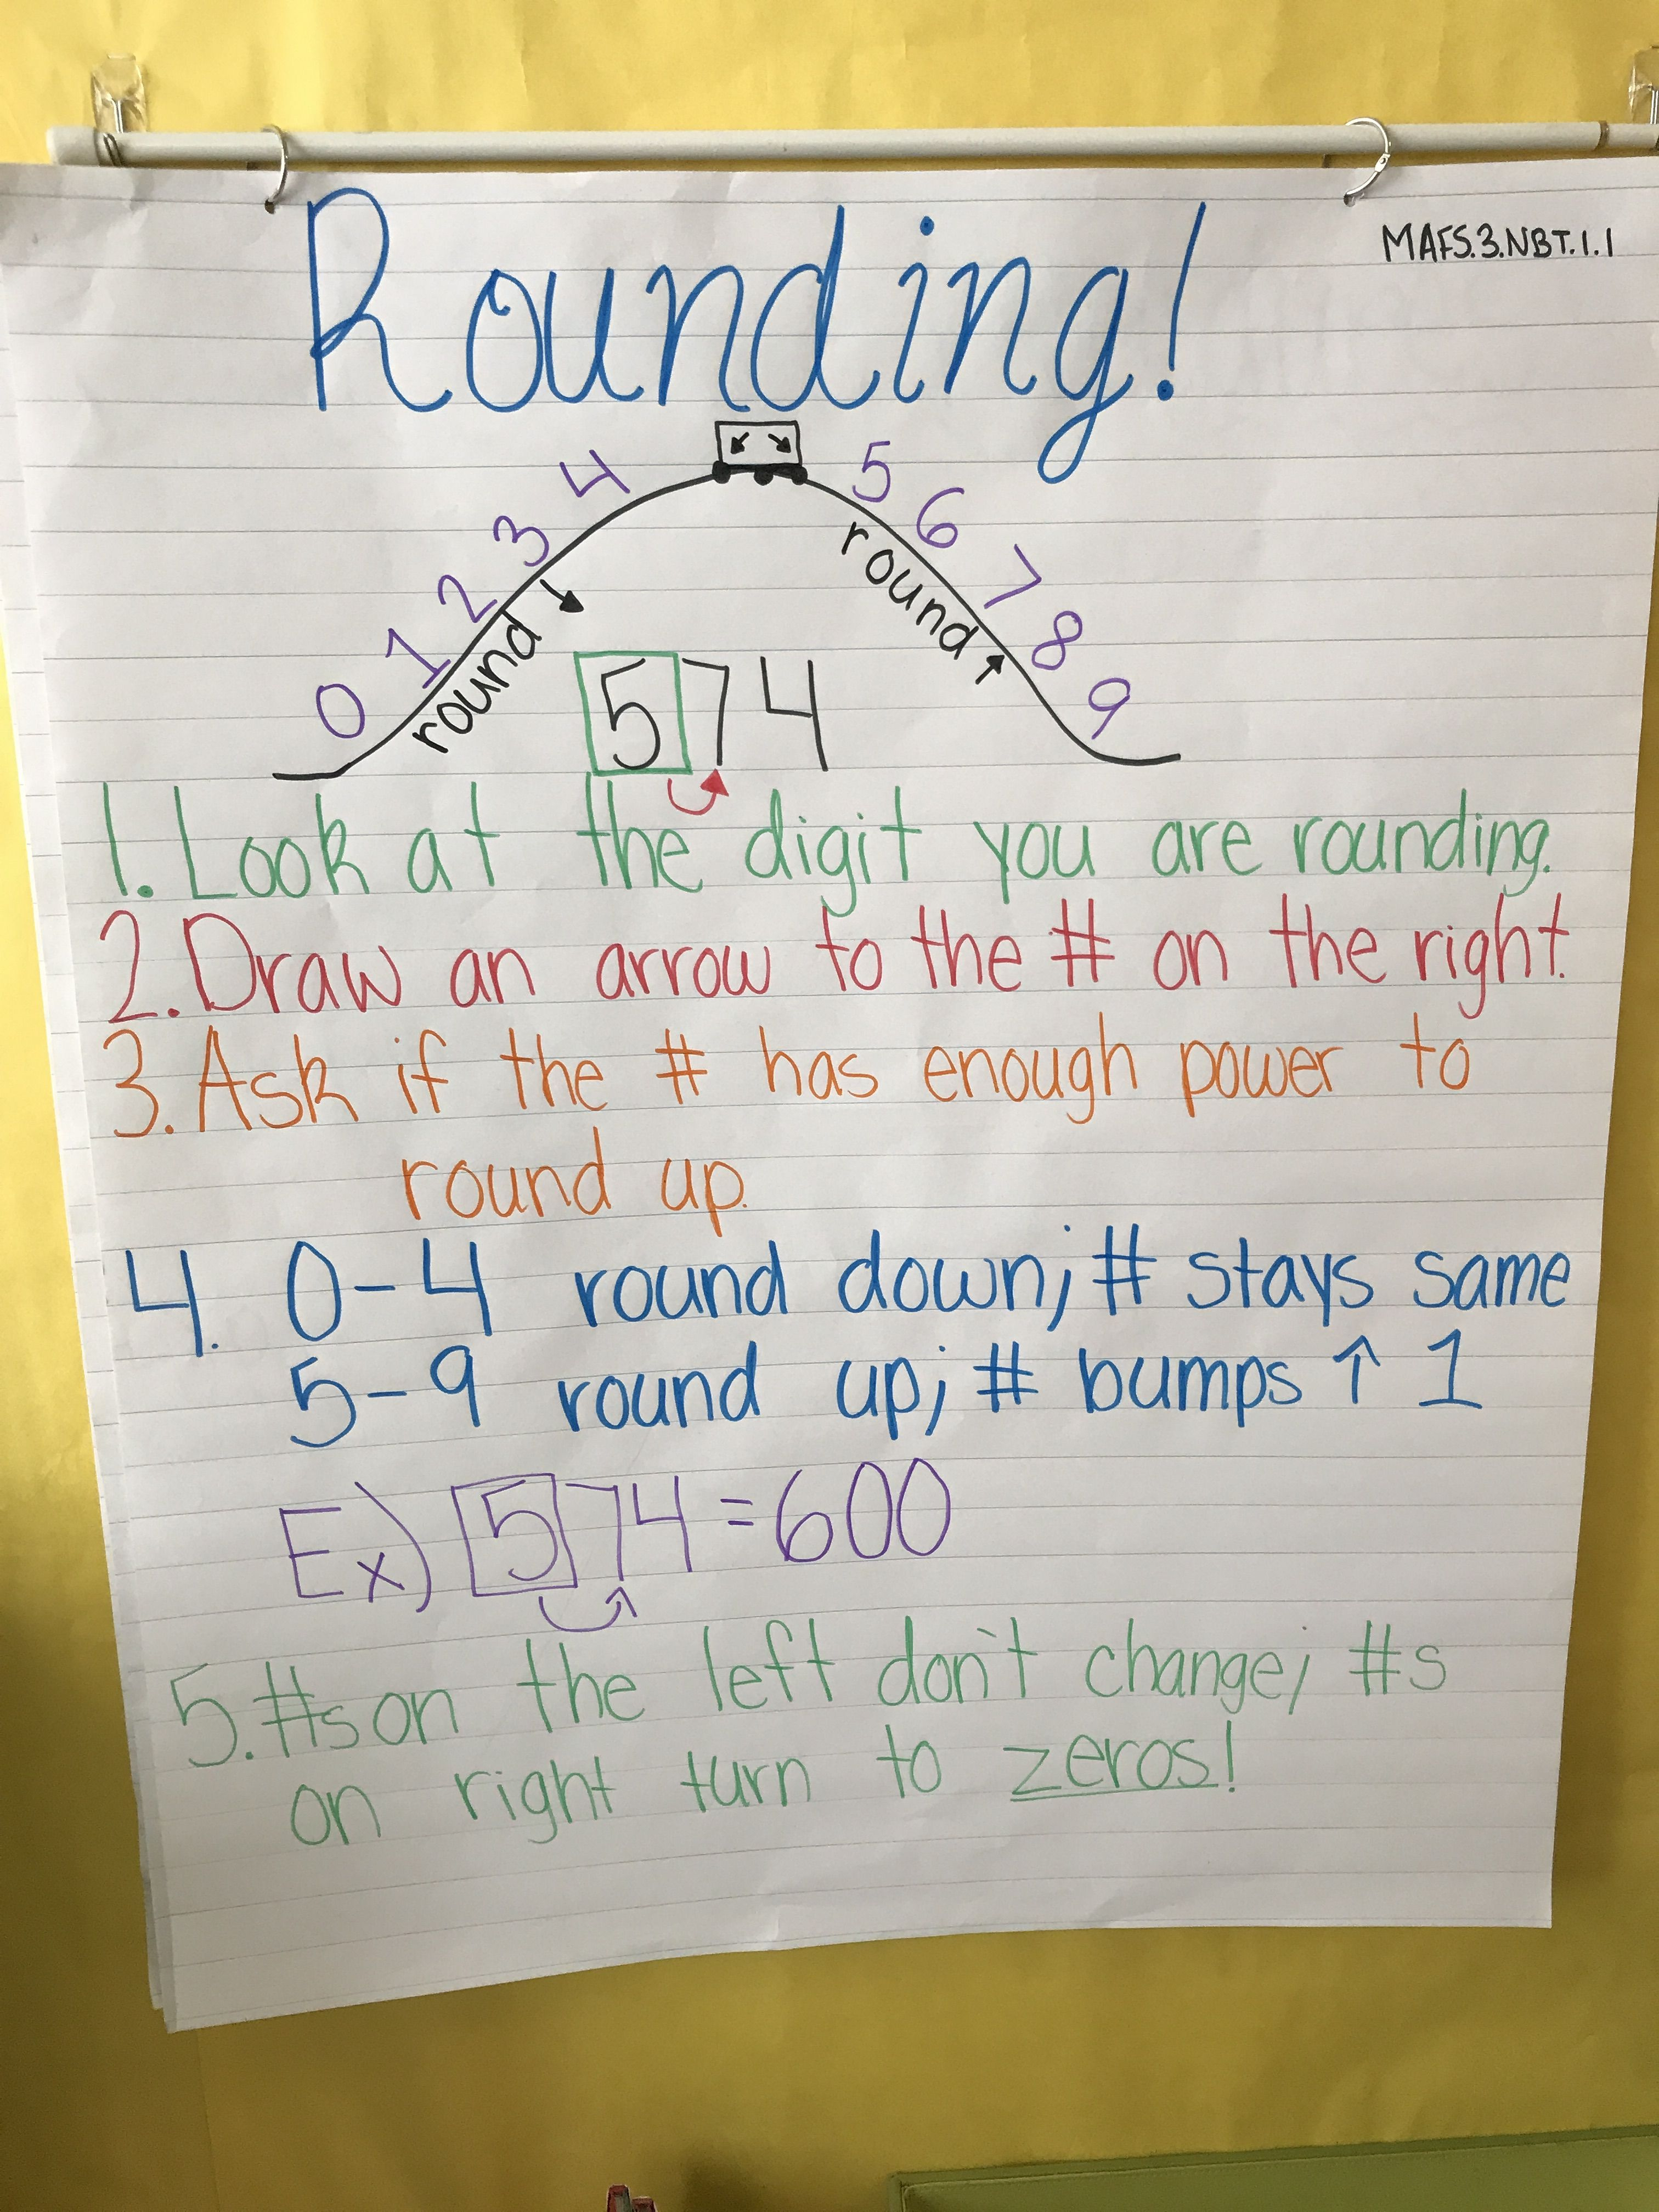 Rounding Roller Coaster Anchor Chart With Rules To Follow